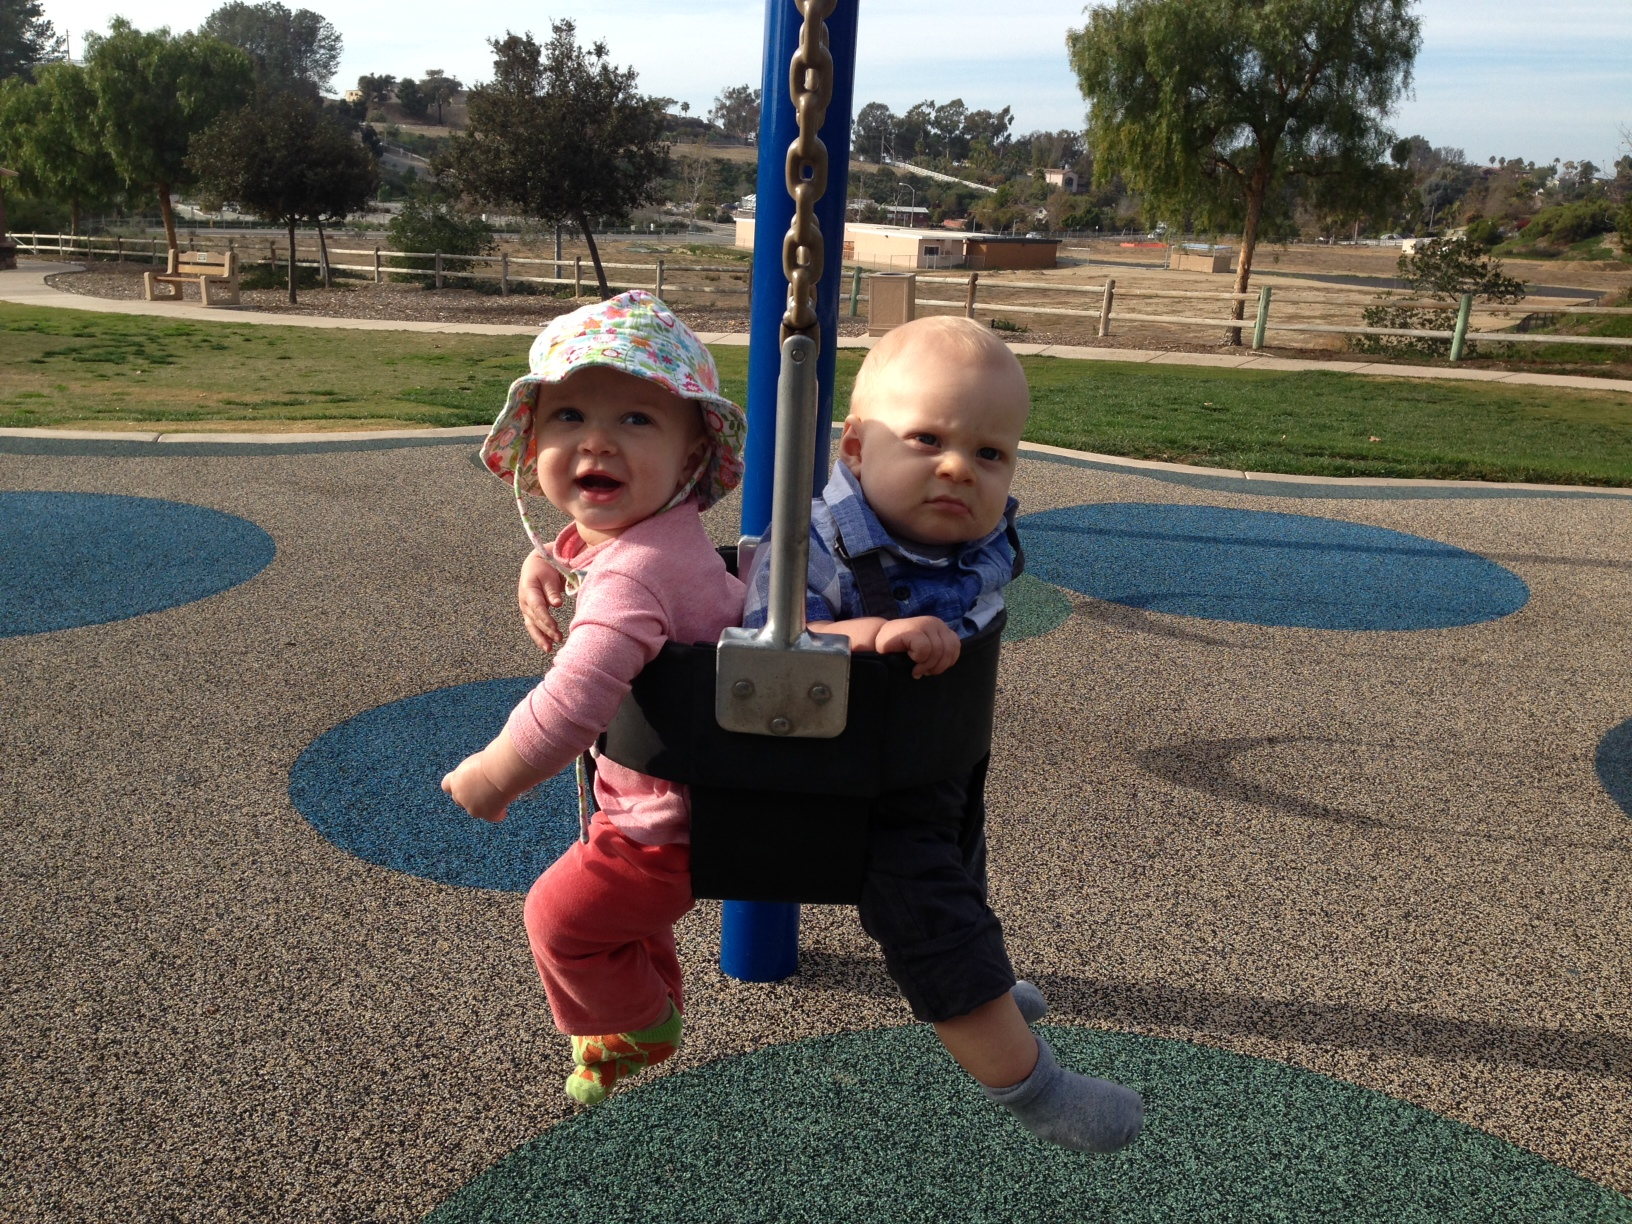 My daughter Tabitha and Lynnie's son Holden chillin' at the park.